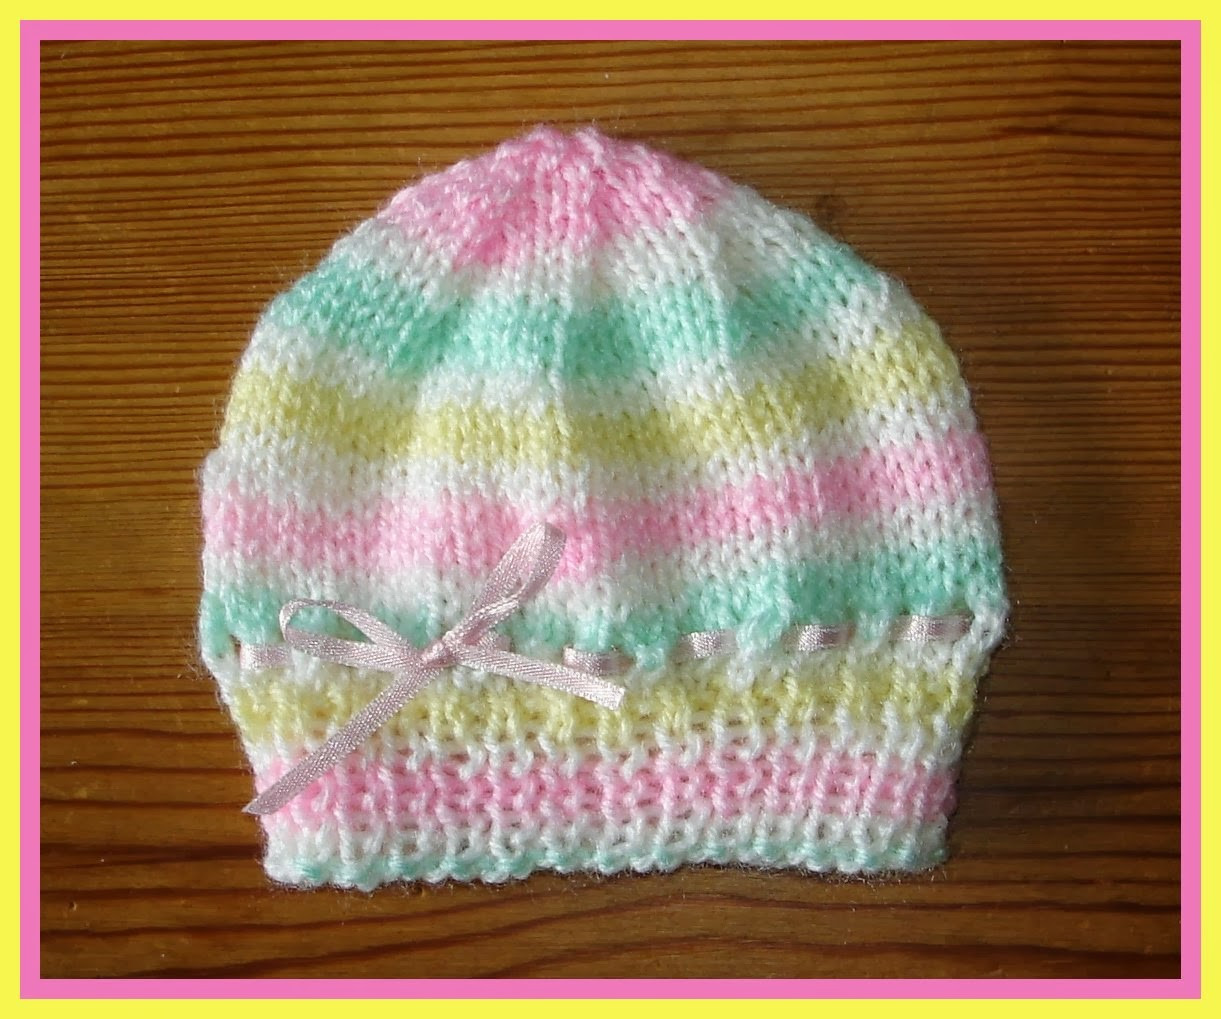 Best Of Marianna S Lazy Daisy Days Candystripe Knitted Baby Hats Knitting Baby Cap Of Lovely 48 Photos Knitting Baby Cap